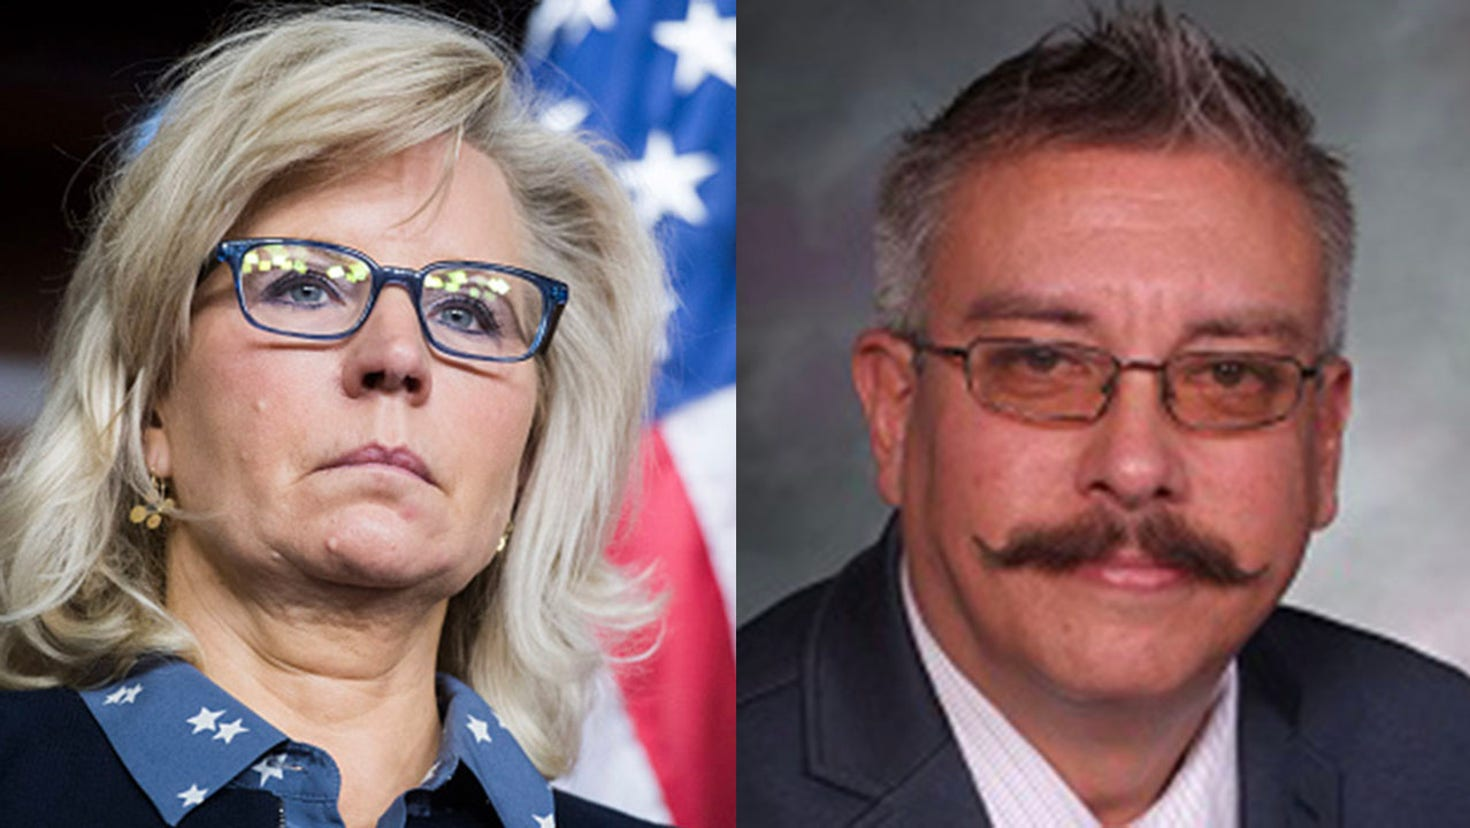 Fox News: Liz Cheney gets 2022 primary challenger